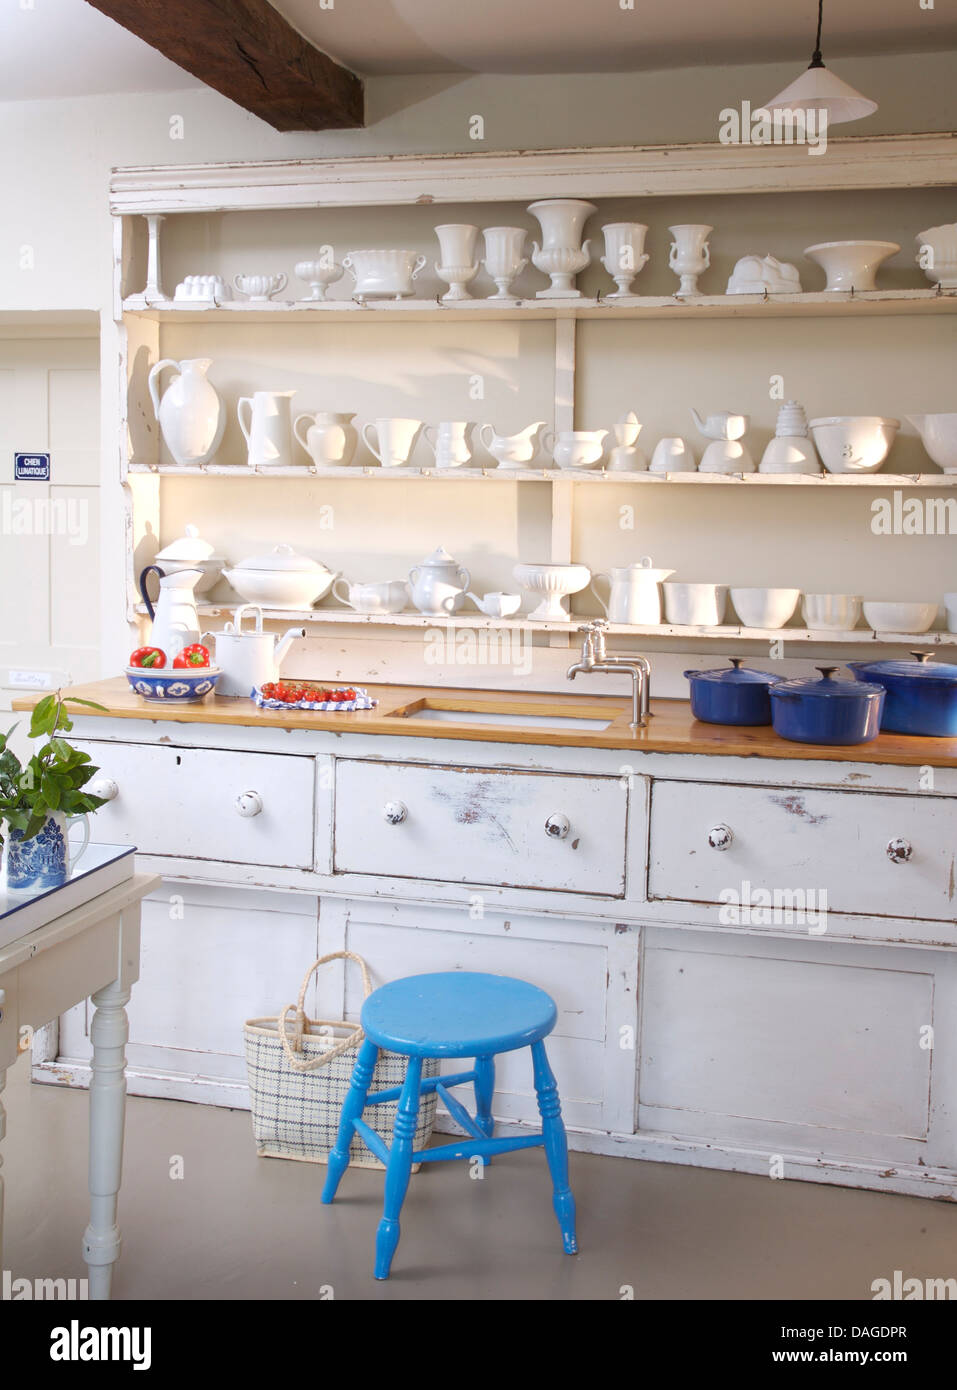 White china displayed on shelves above sink in white built in dresser in cottage kitchen with bright blue stool